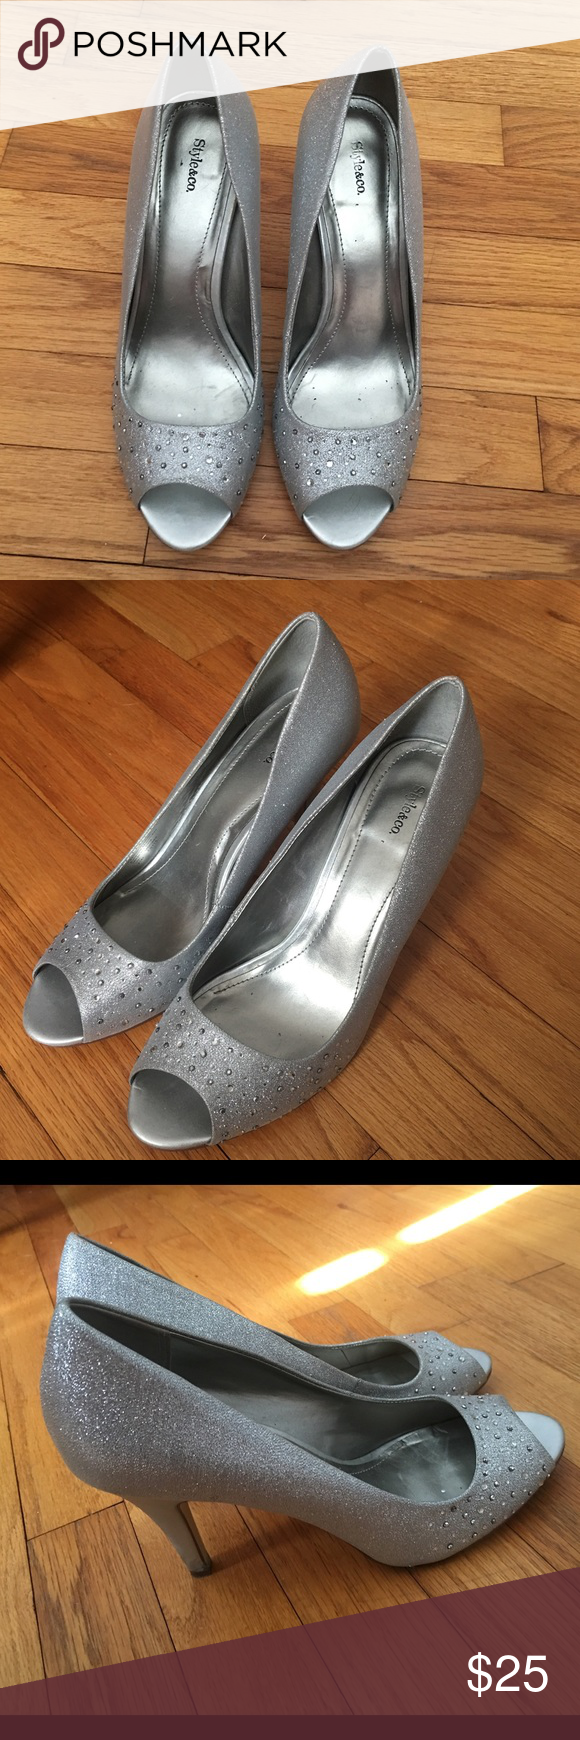 Style & Co Heels These are very comfortable well kept together Heels Style & Co Shoes Heels